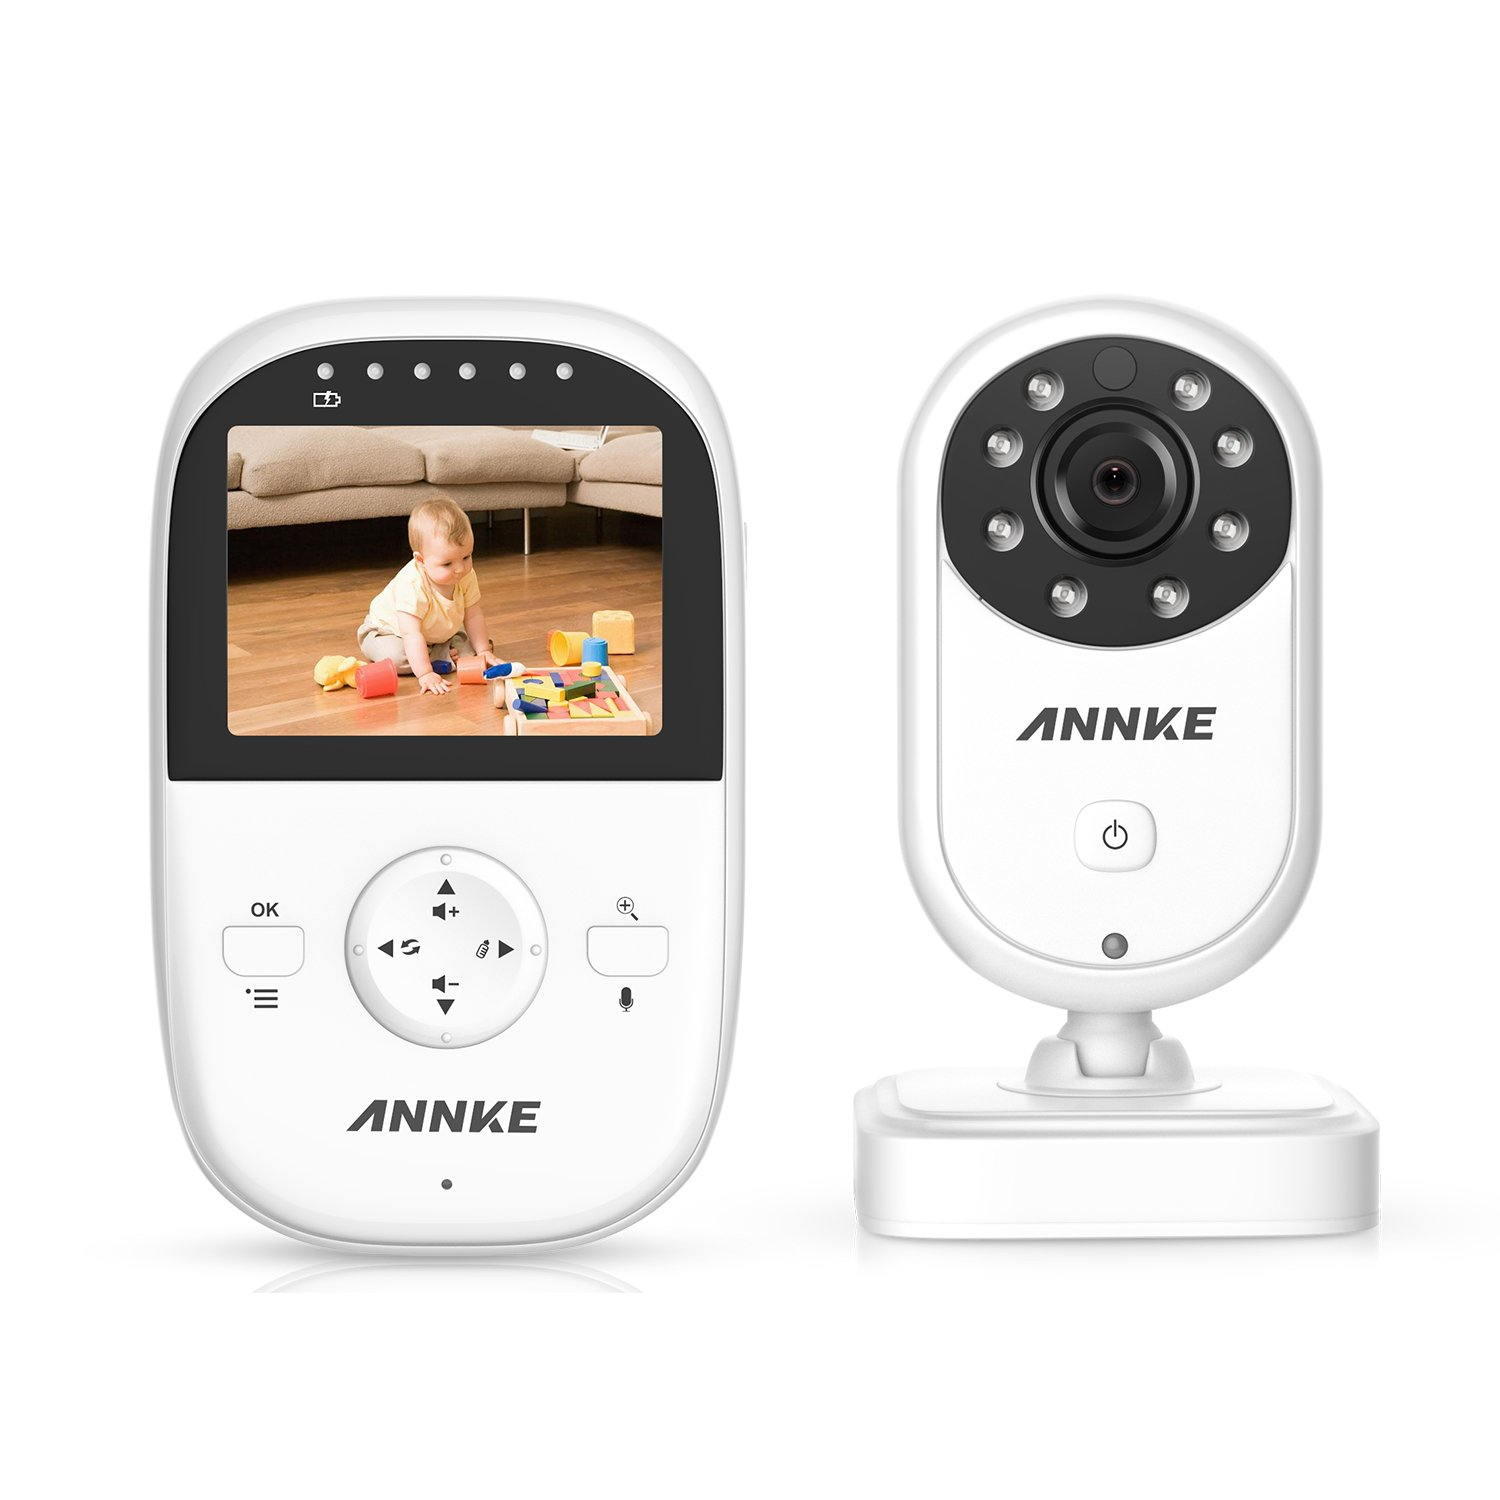 ANNKE Premium Wireless Compact Video Baby Monitor with 2.4 Color LCD Screen Controller Unit, Digital Camera, Infrared Night Vision, Two Way Talk Back, 2.4GHz Encrypted WiFi Long Transmission Range AU-DN41BB0-11EF-P-OP#USVC1